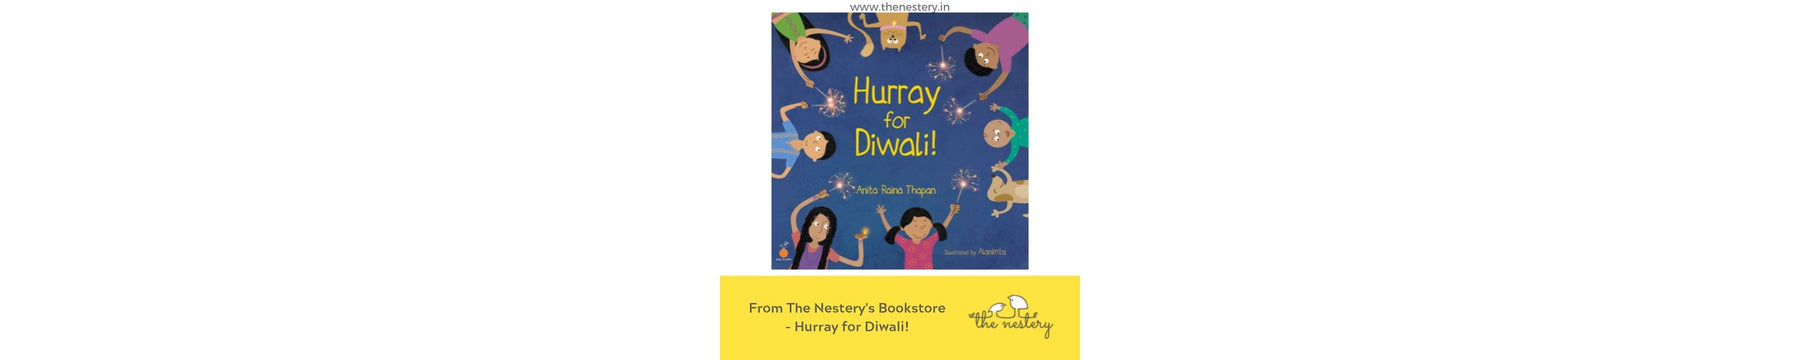 Book Review - Hurray for Diwali!